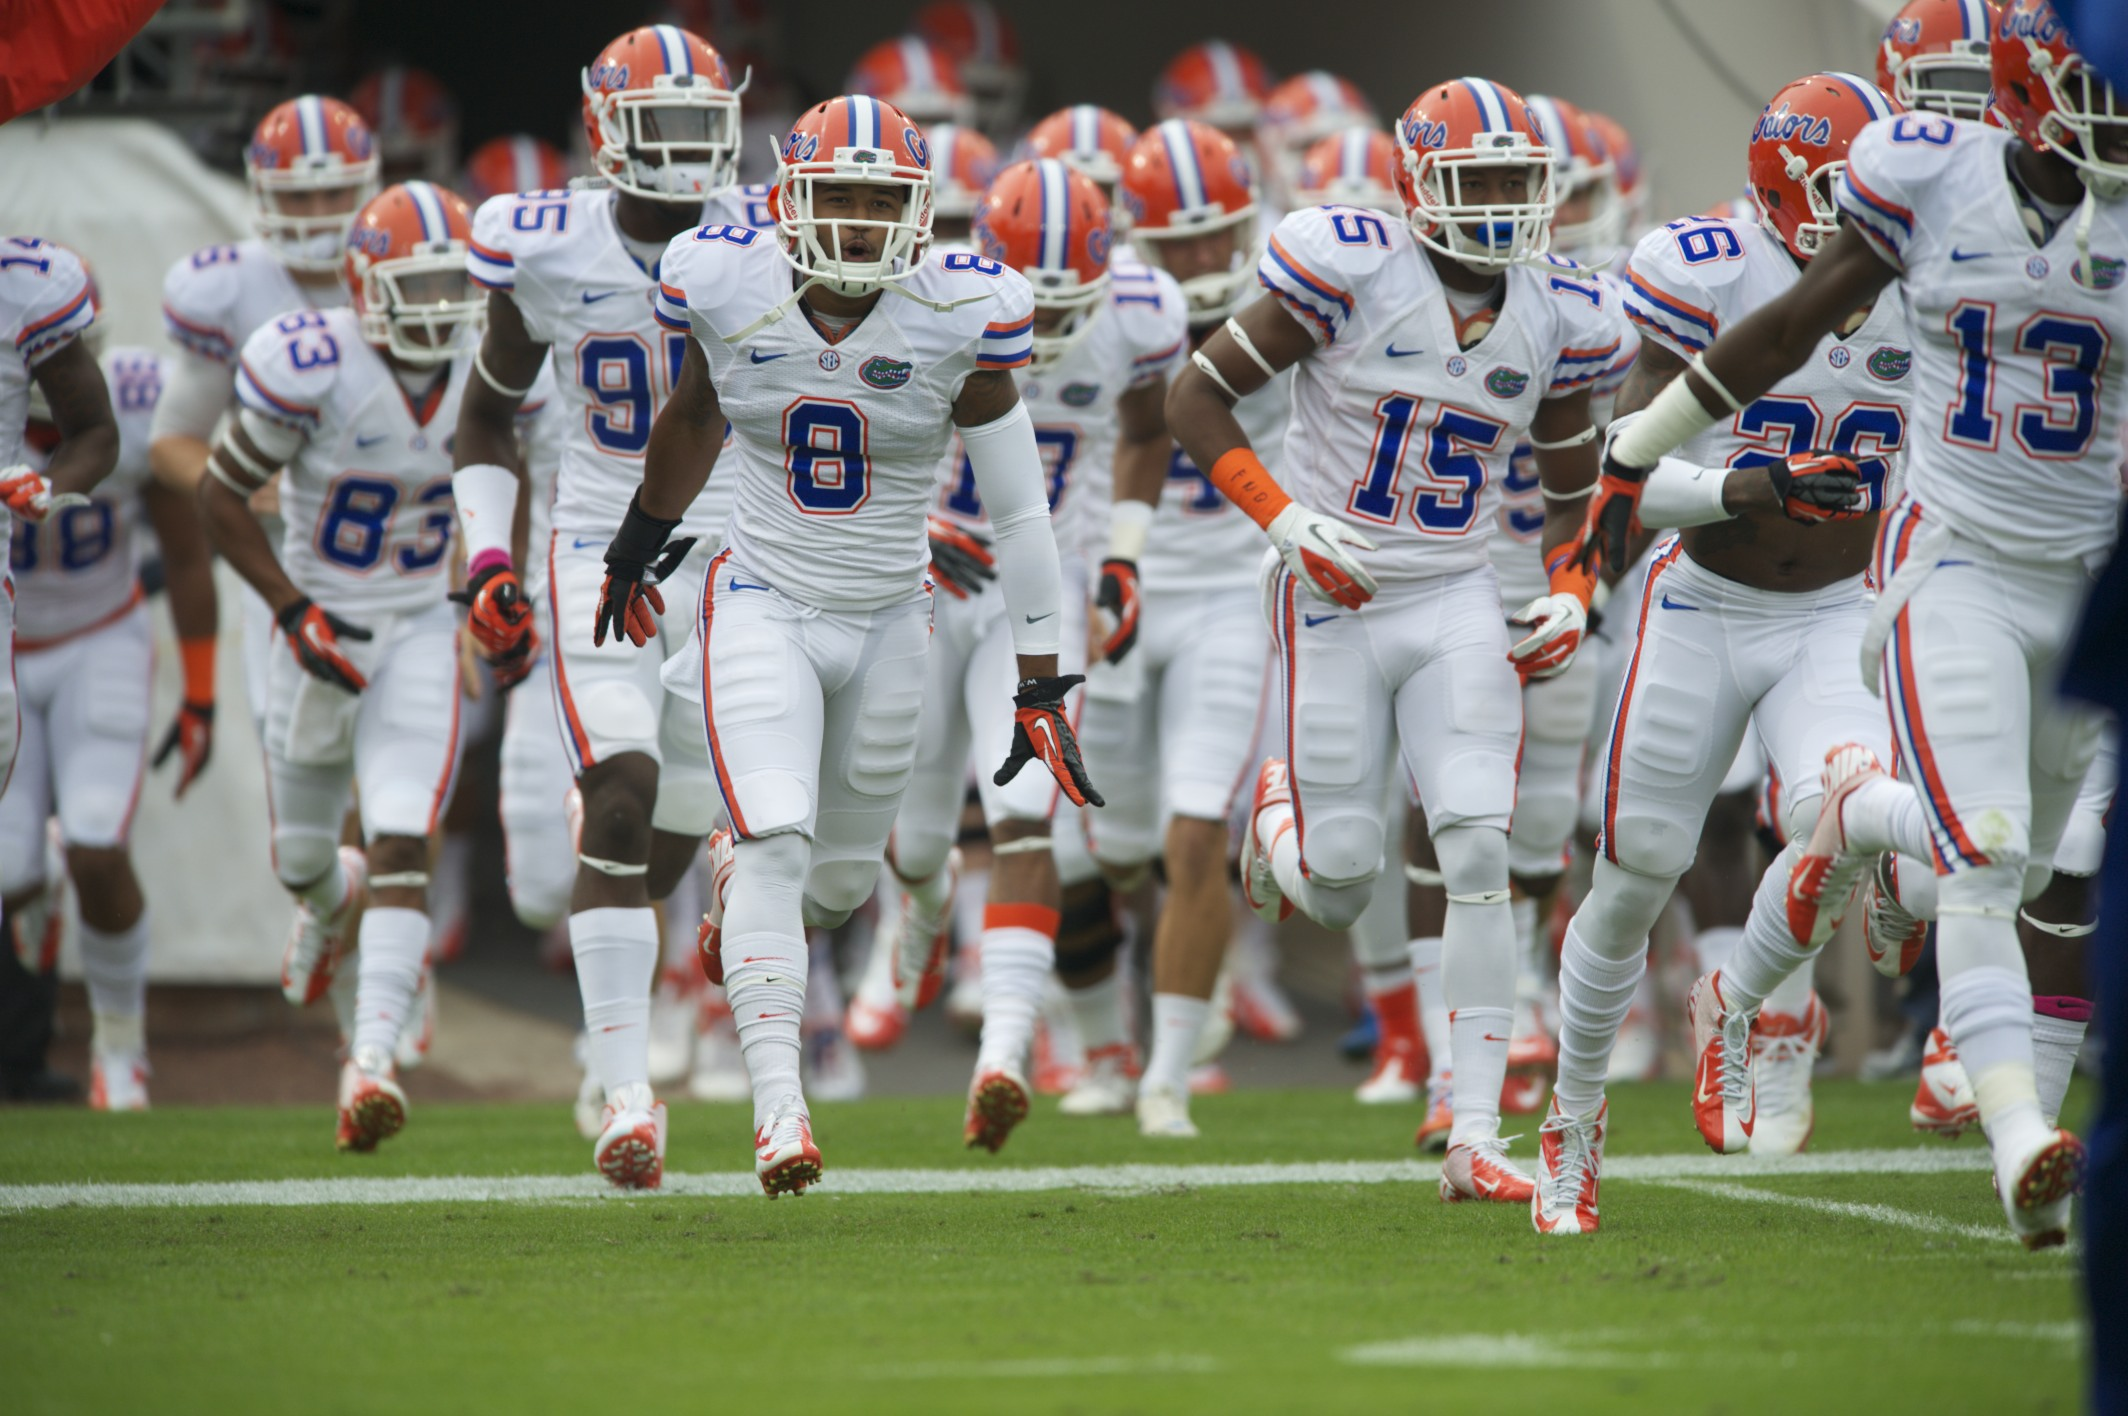 Florida Gators run out to take on the Gerogia bulldogs in Jacksonville, Fla. Saturday afternoon.